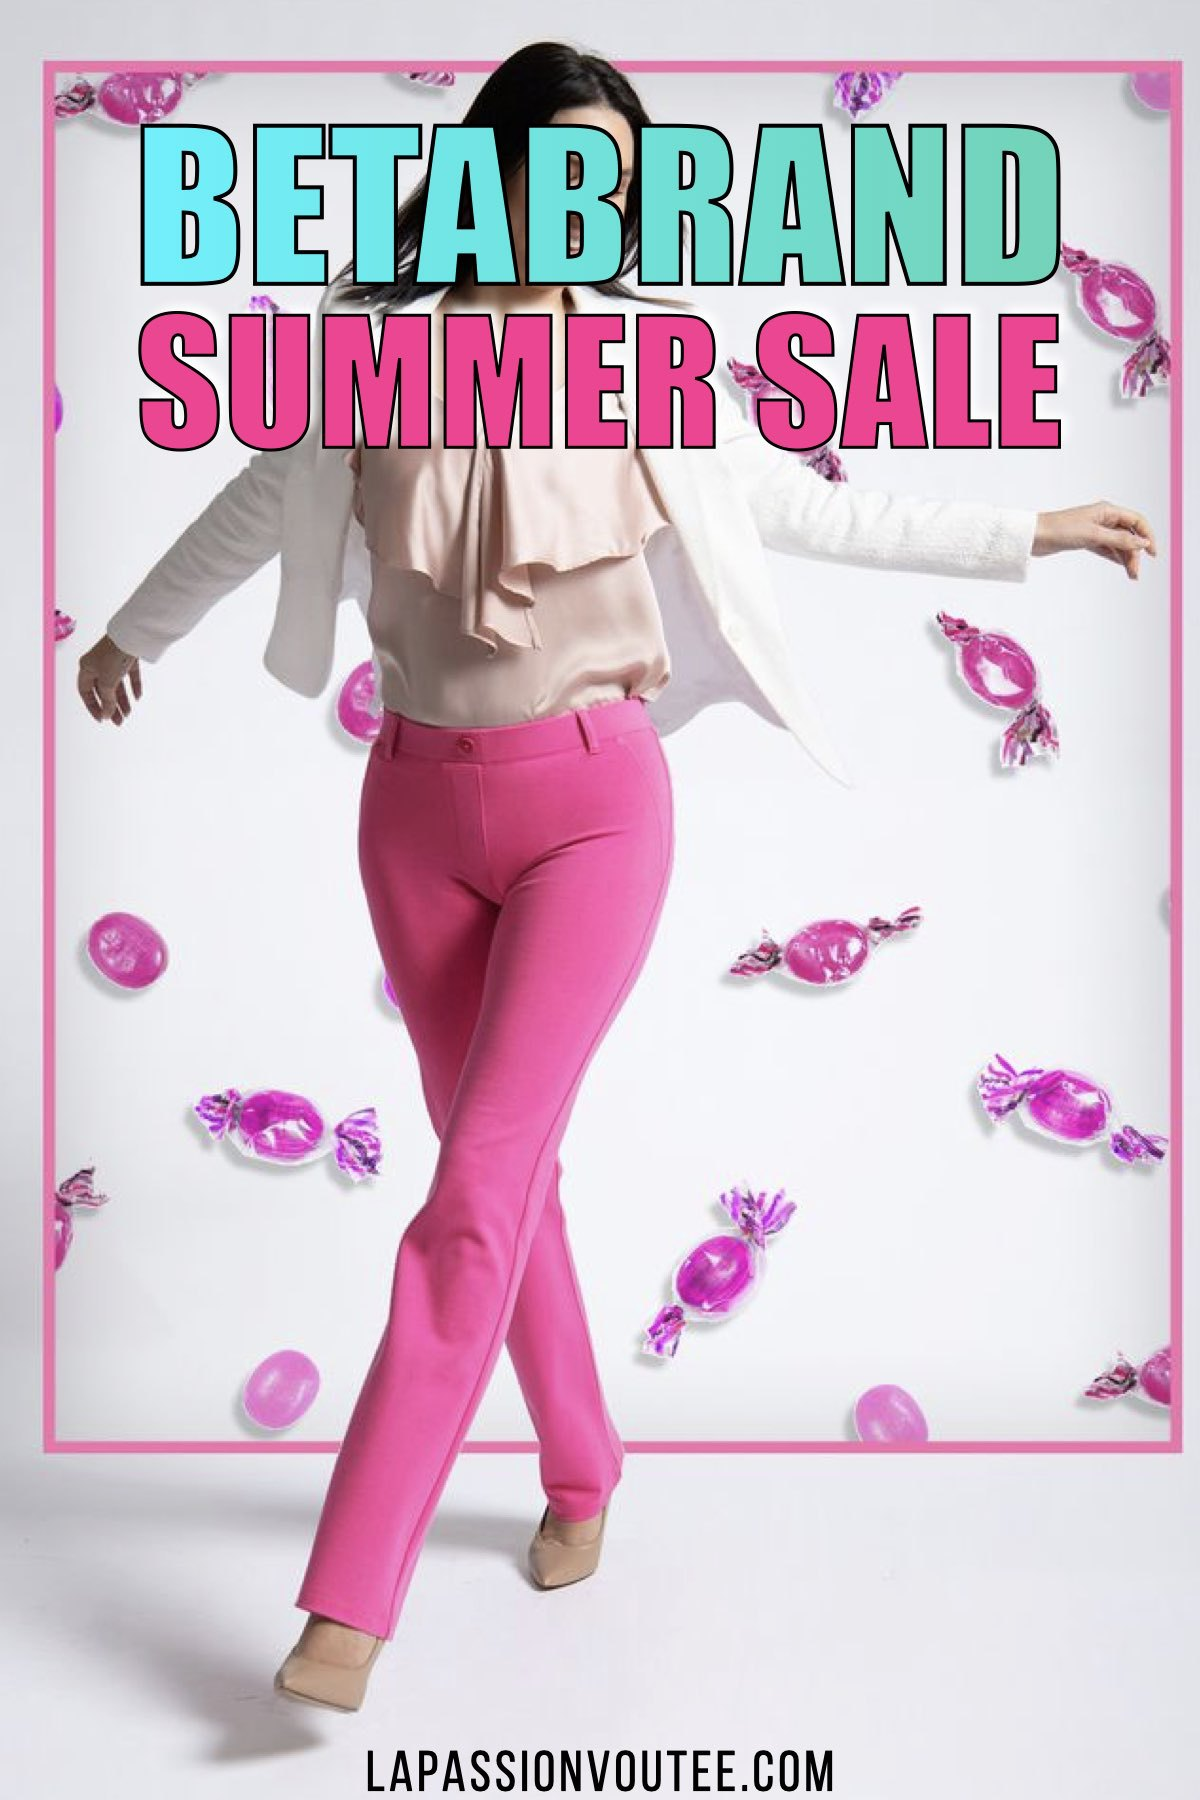 The 2020 Betabrand summer sale starts now. Hundreds of items are significantly marked down as low as $34. Betabrand summer sale - Betabrand Christmas in July Sale.